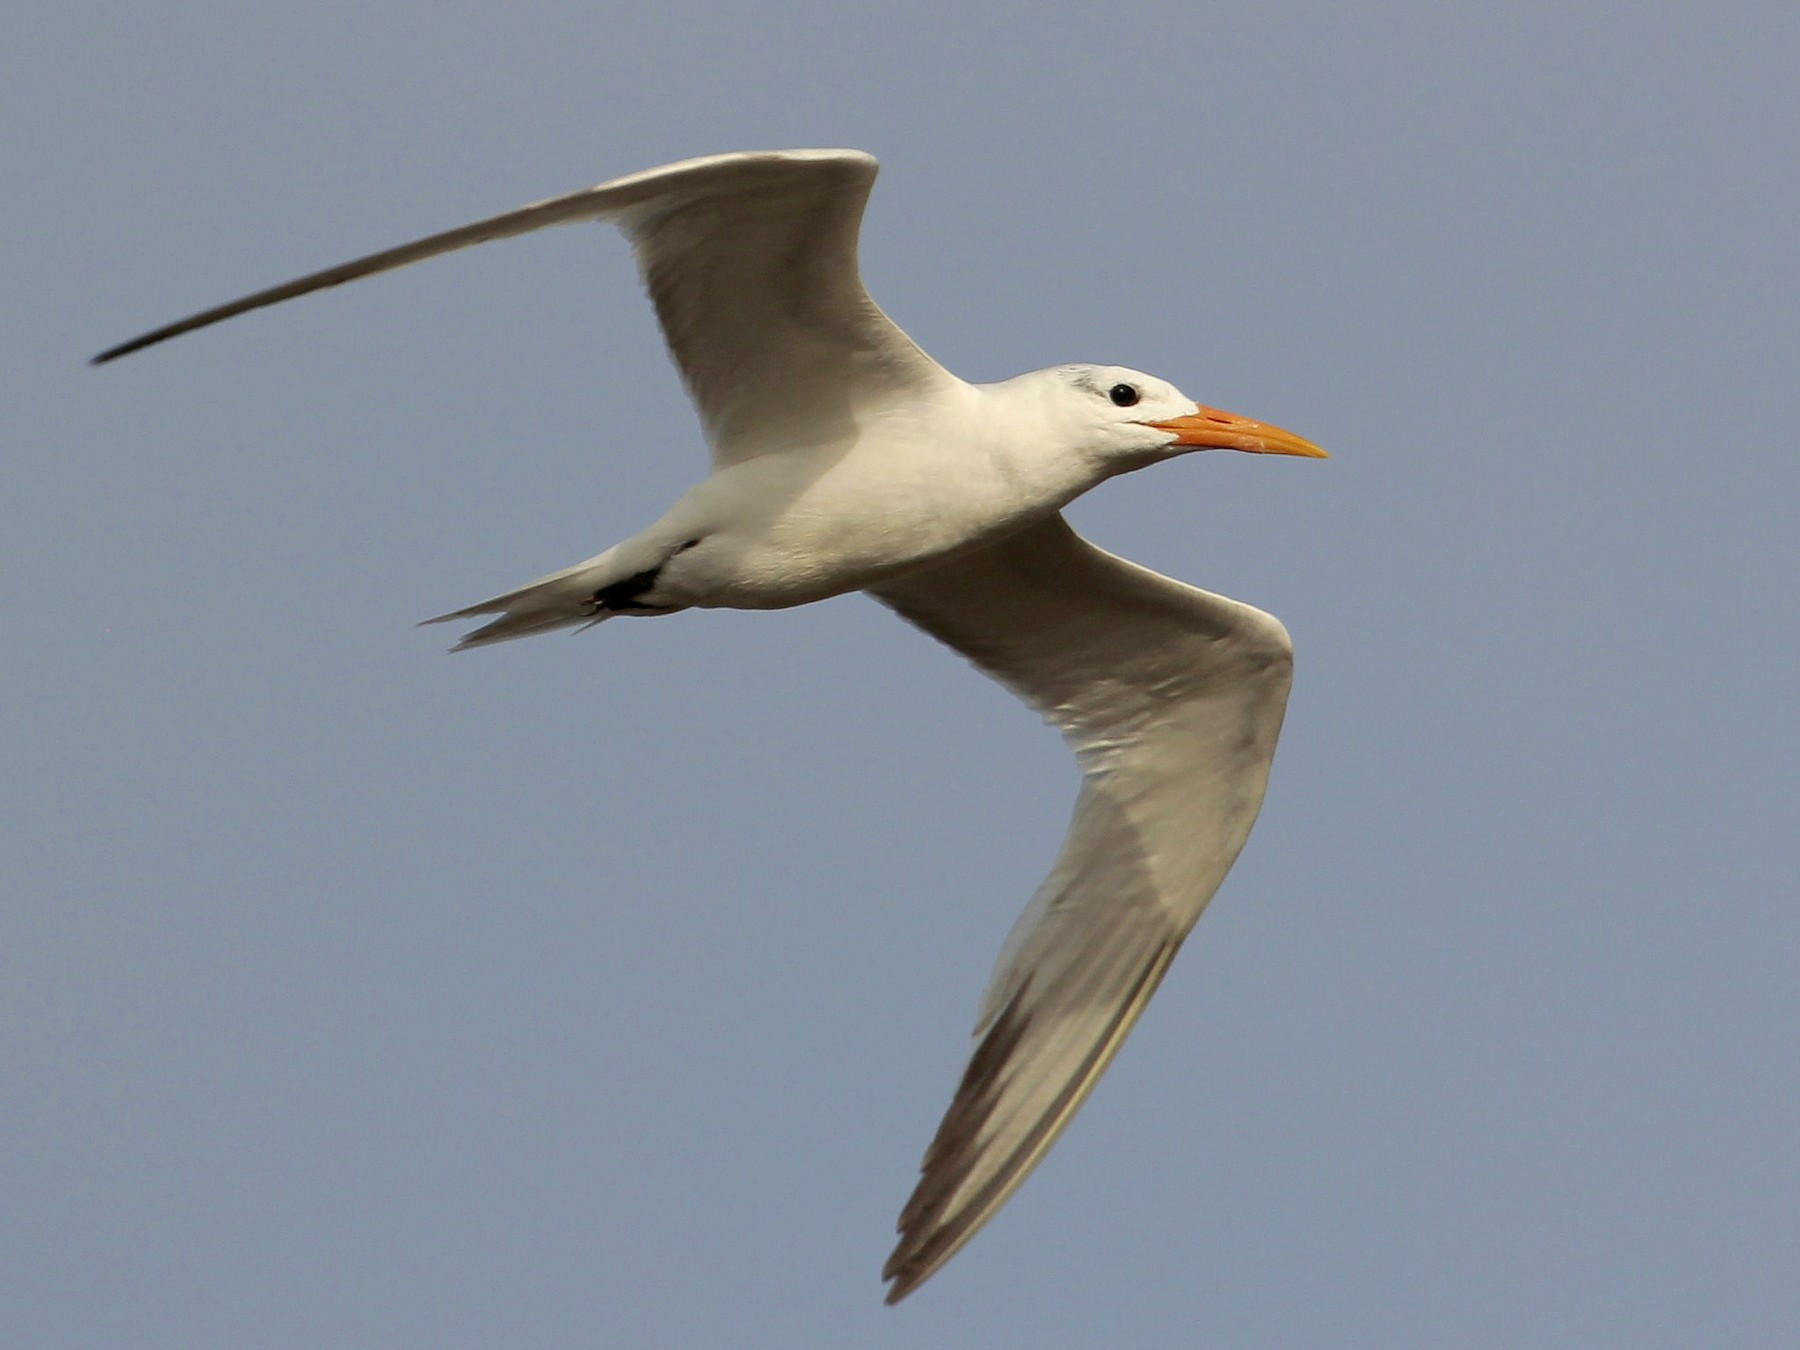 Royal Tern - Pedro Plans